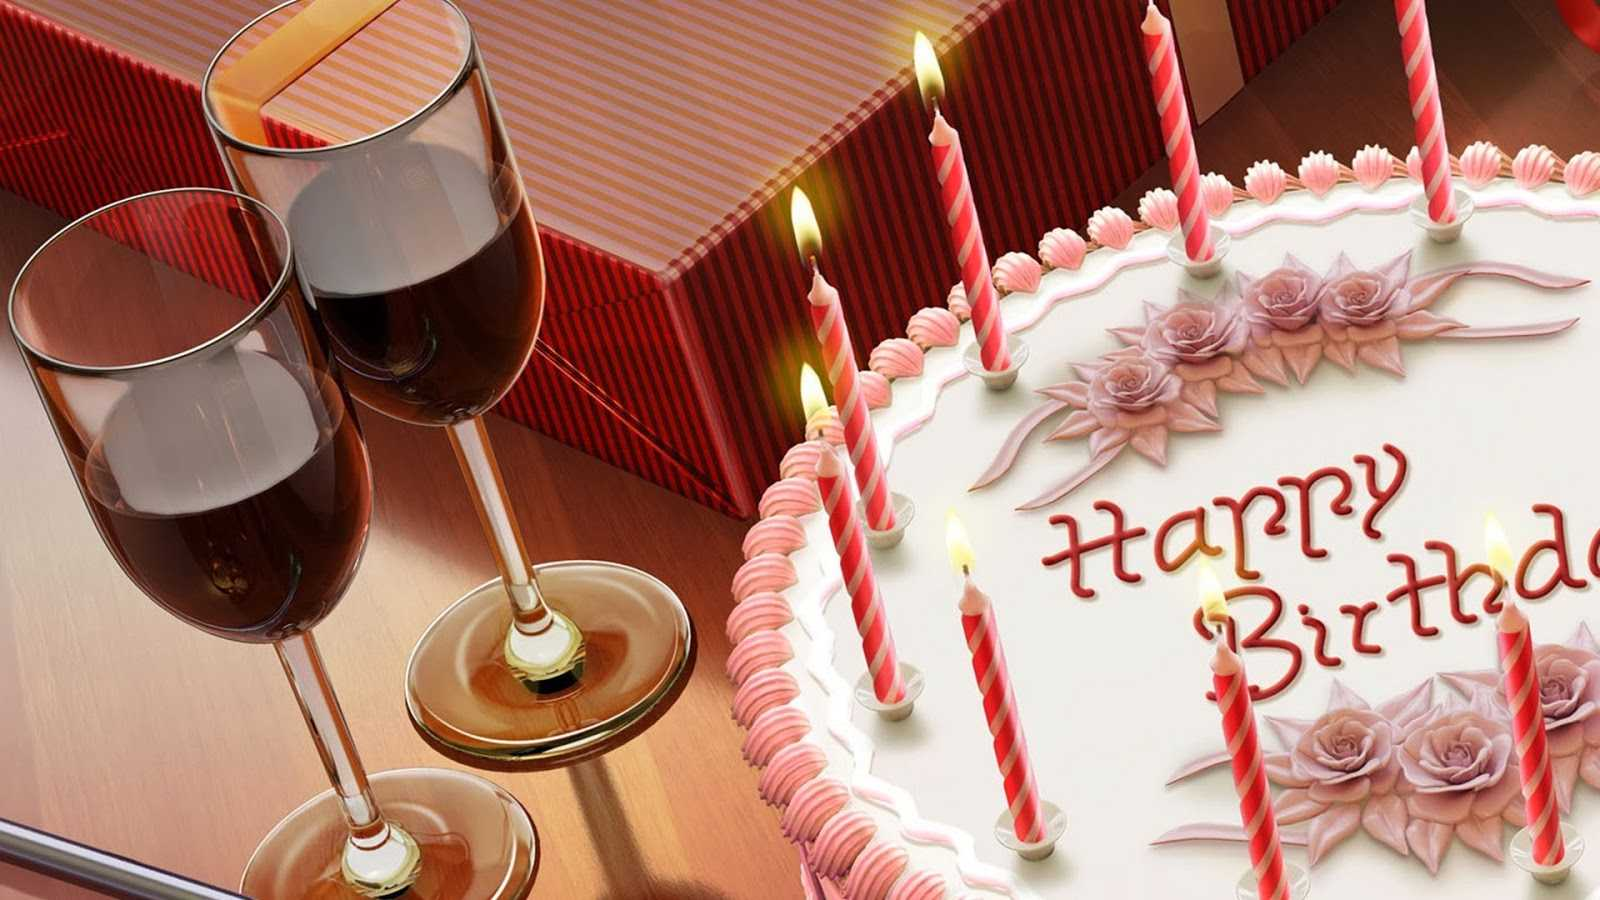 Advance Happy Birthday Wishes Hd Images Free Download - Latest Hot Styles of ...